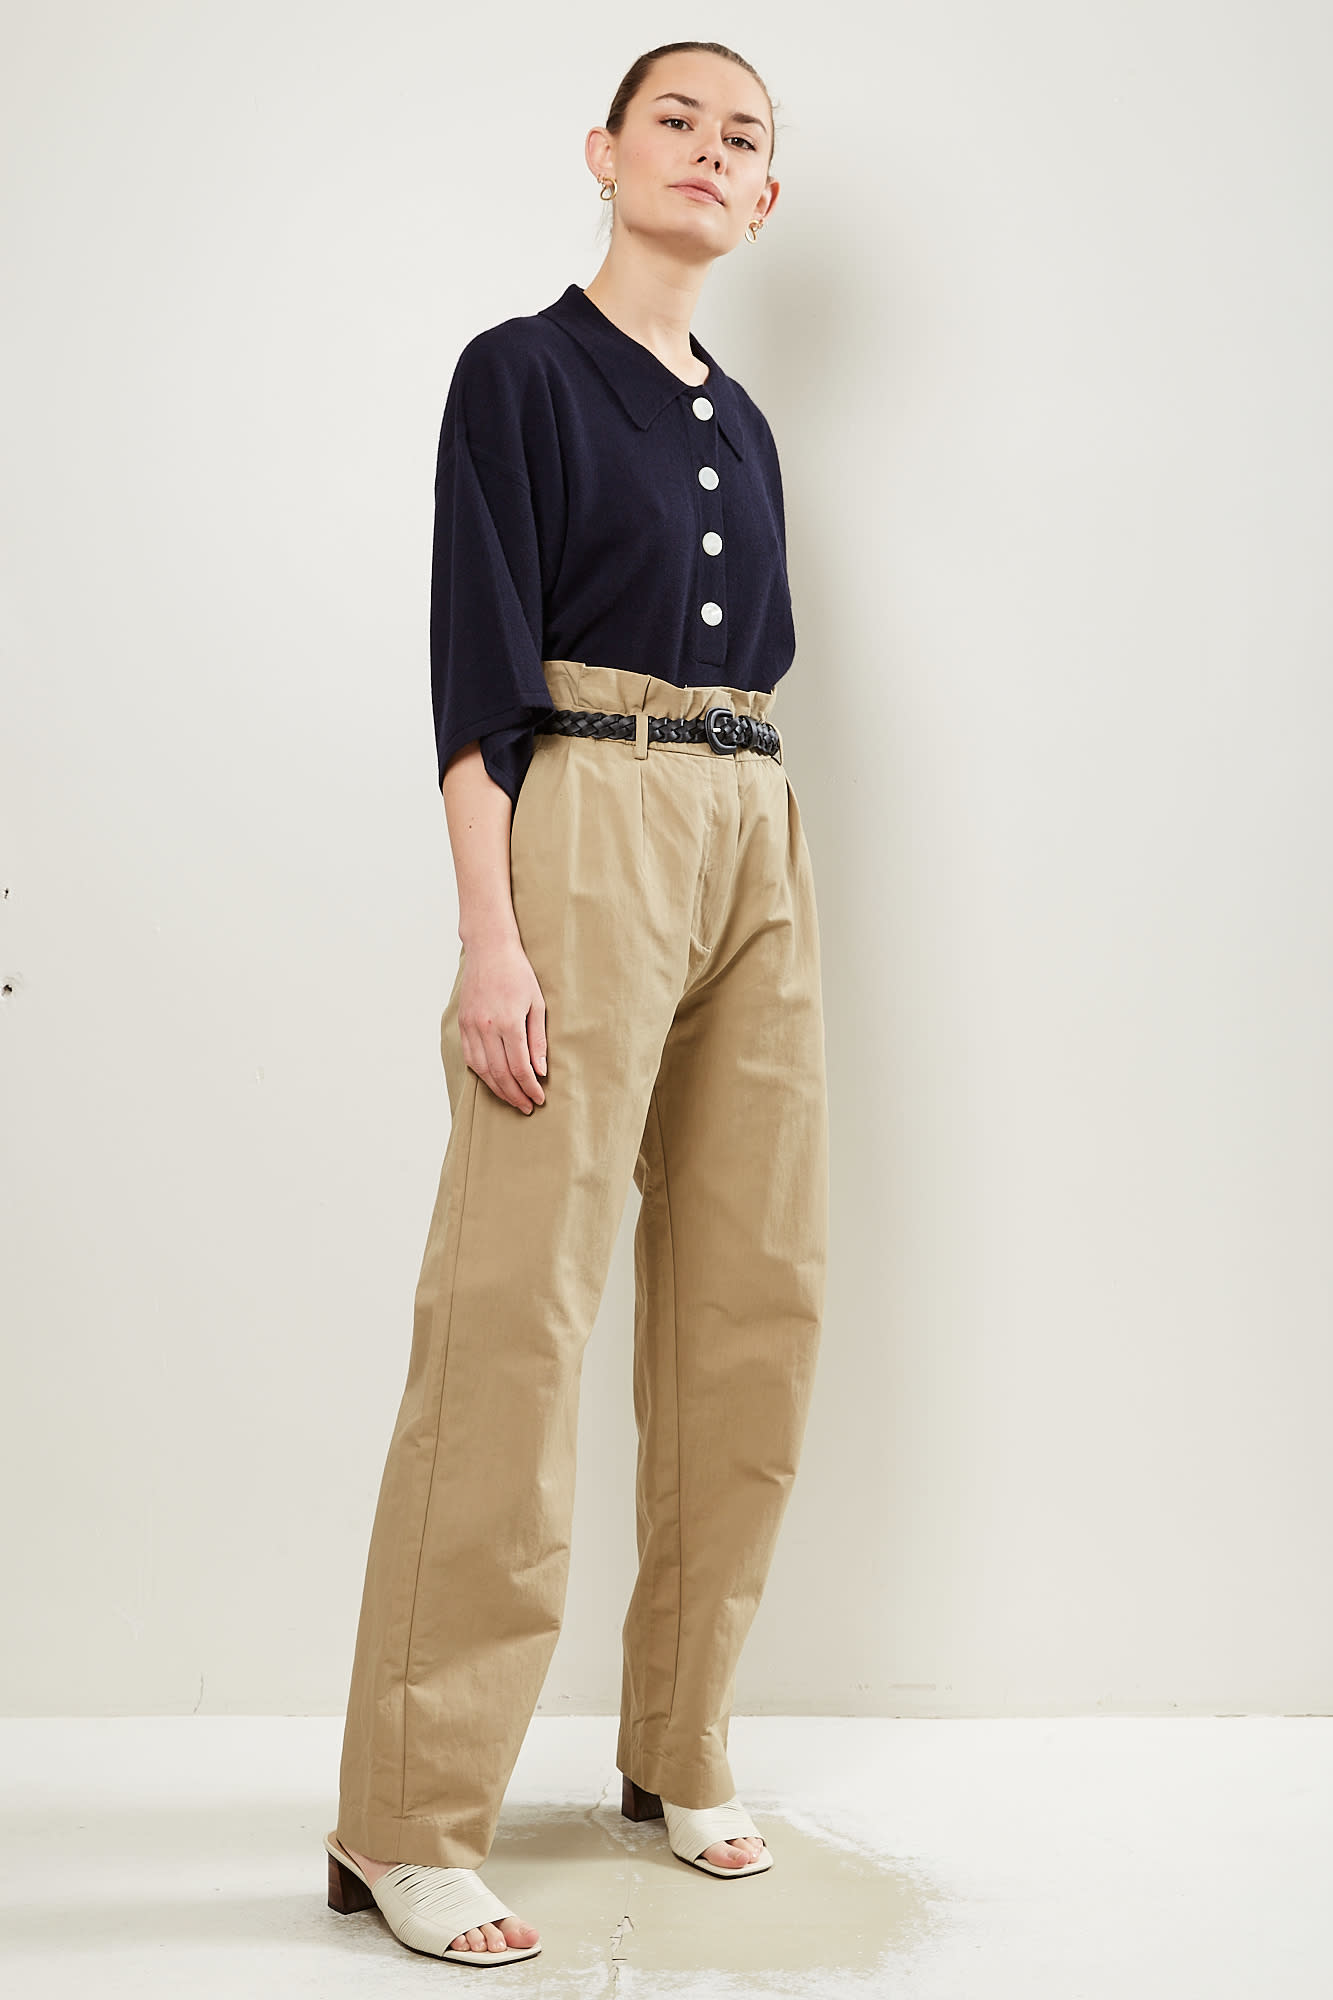 Les Coyotes de Paris Celia trousers